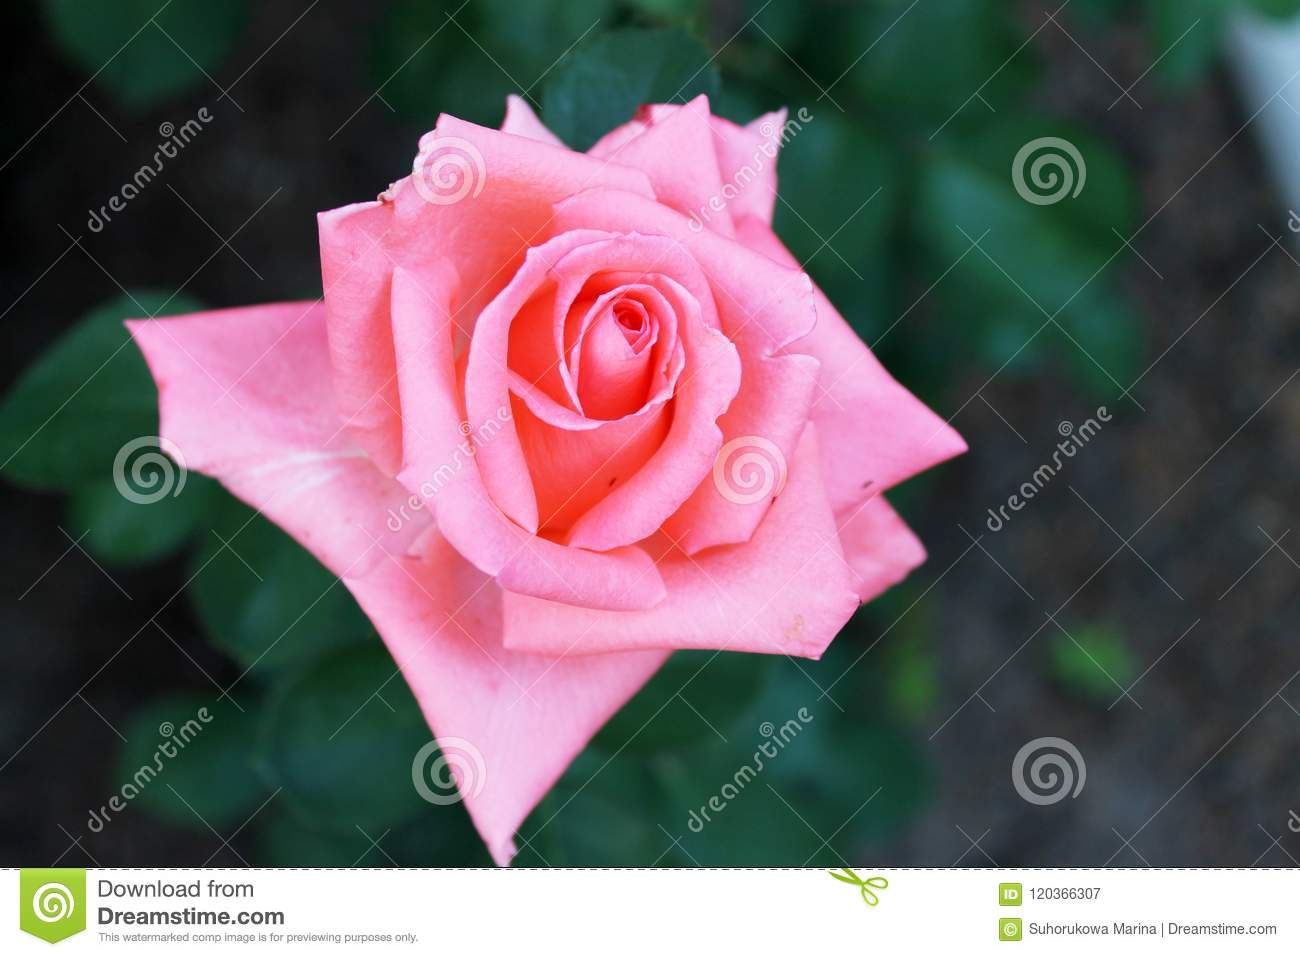 Beautiful rose flower backgrounds stock image image of circles beautiful backgrounds of flowers roses yellow pink alleys of roses izmirmasajfo